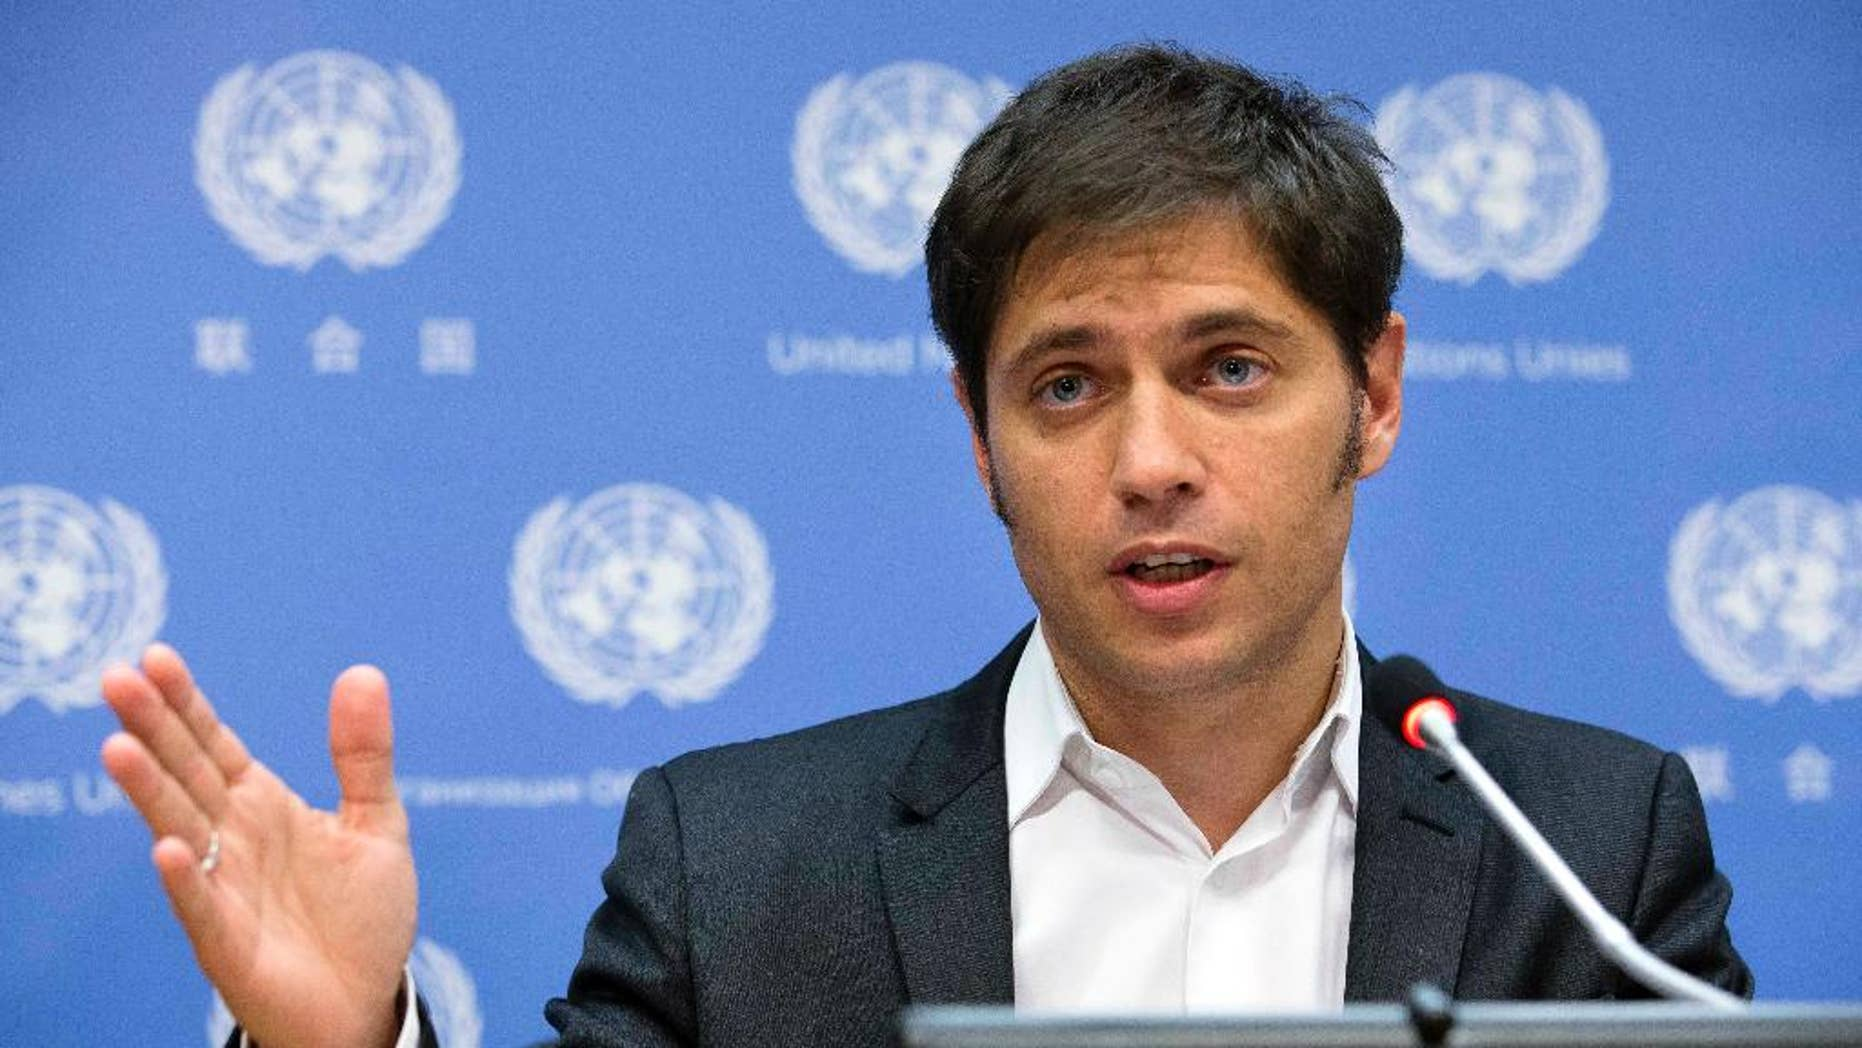 Argentine Economic Minister Axel Kicillof speaks during a news conference at United Nations headquarters, Wednesday, June 25, 2014. The winners of a decade-long debt battle asked a U.S. judge on Tuesday to deny Argentina's request for more negotiating time to avoid a catastrophic default. (AP Photo/John Minchillo)